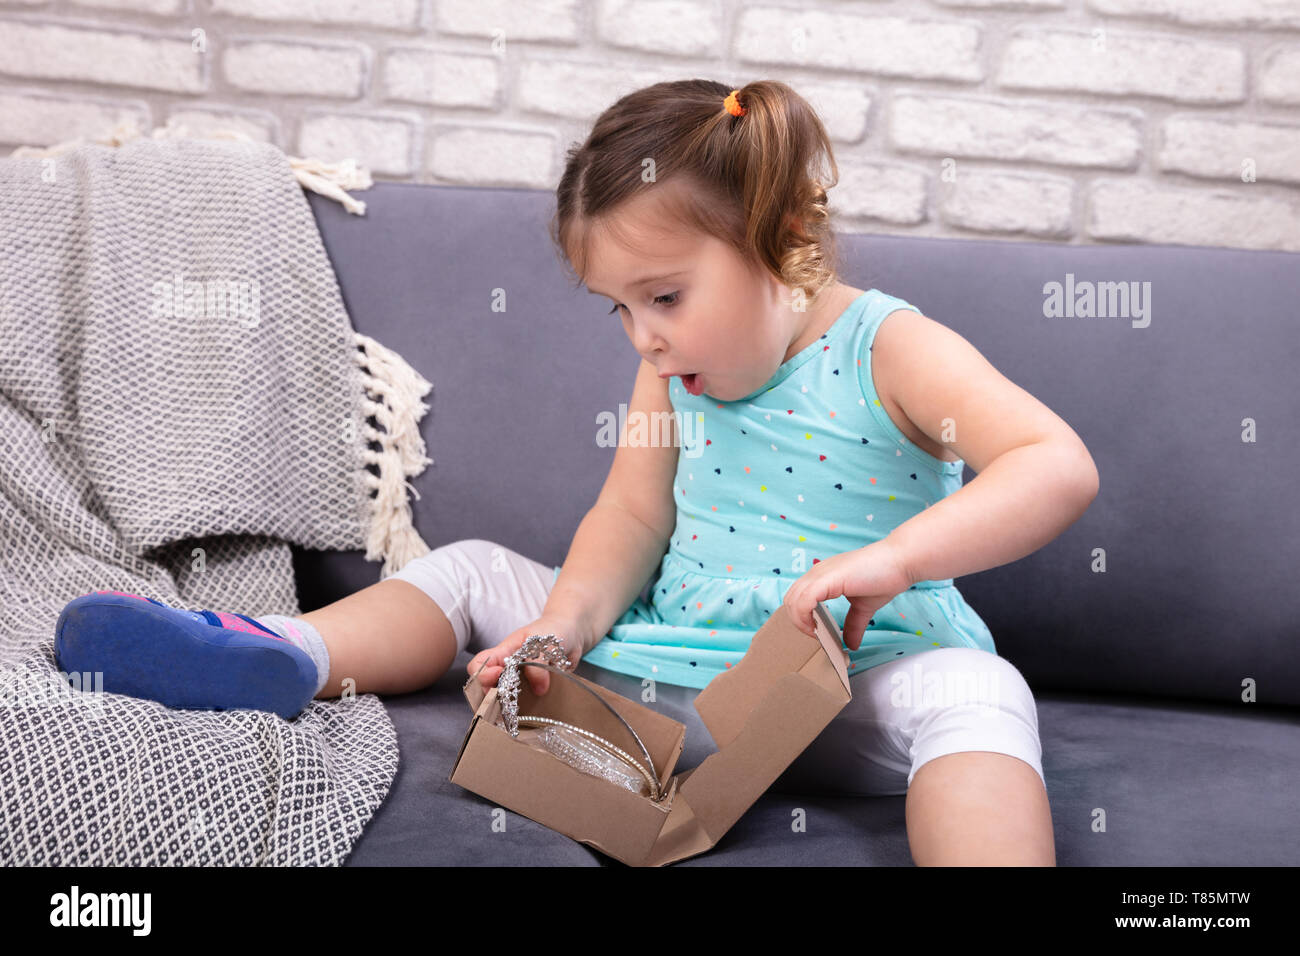 Surprise Little Girl Sitting On Sofa Opening Brown Parcel Box - Stock Image